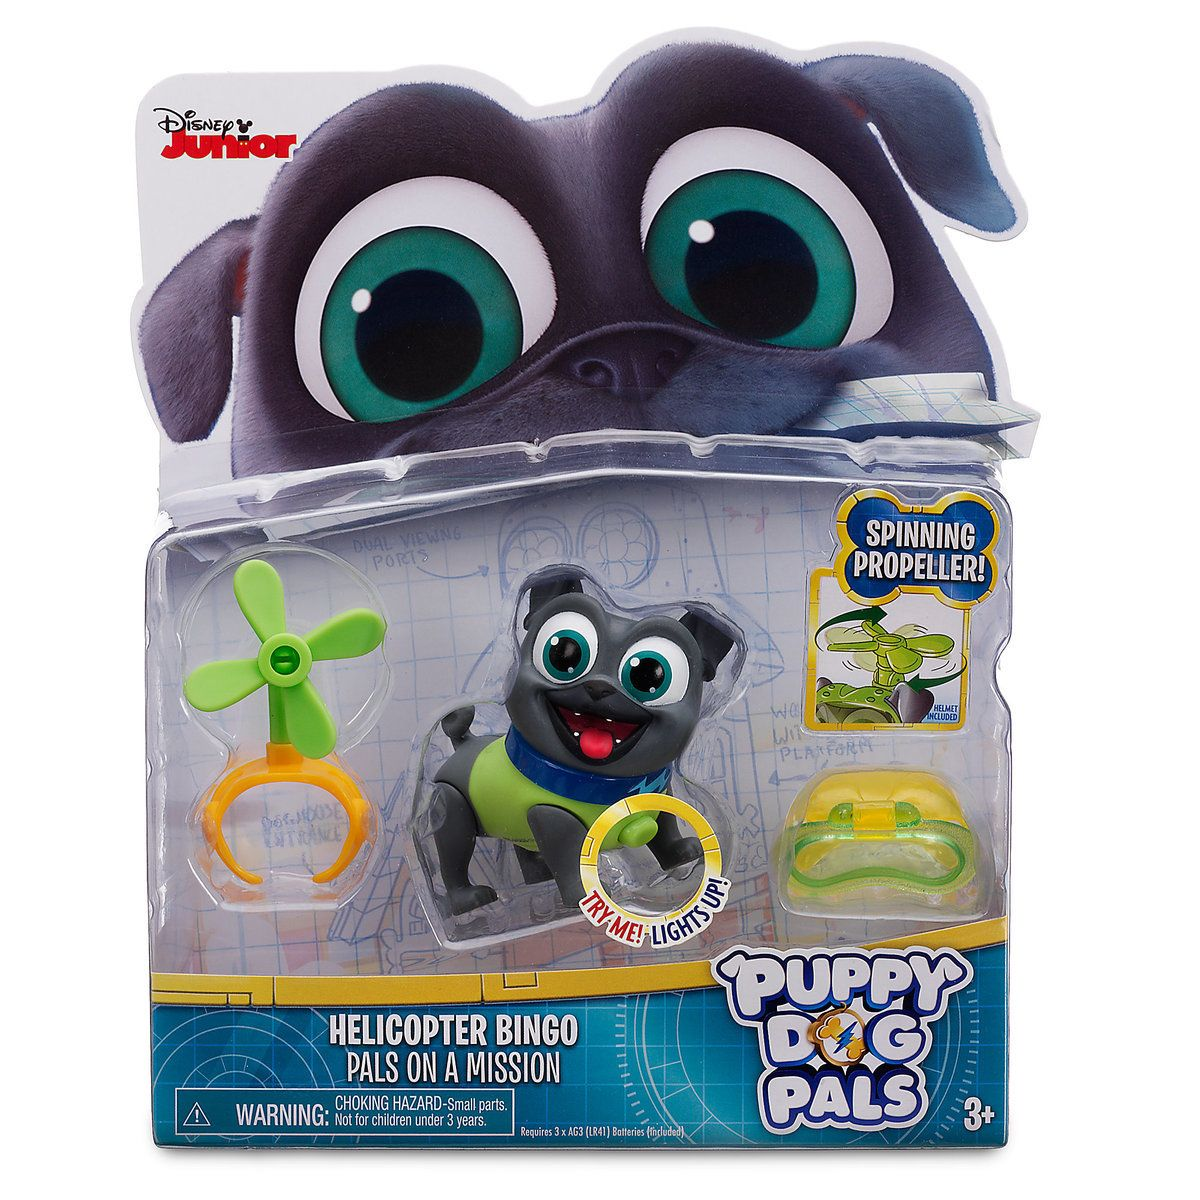 Bingo Pals On A Mission Toy Puppy Dog Pals Dogs And Puppies Toy Puppies Puppies